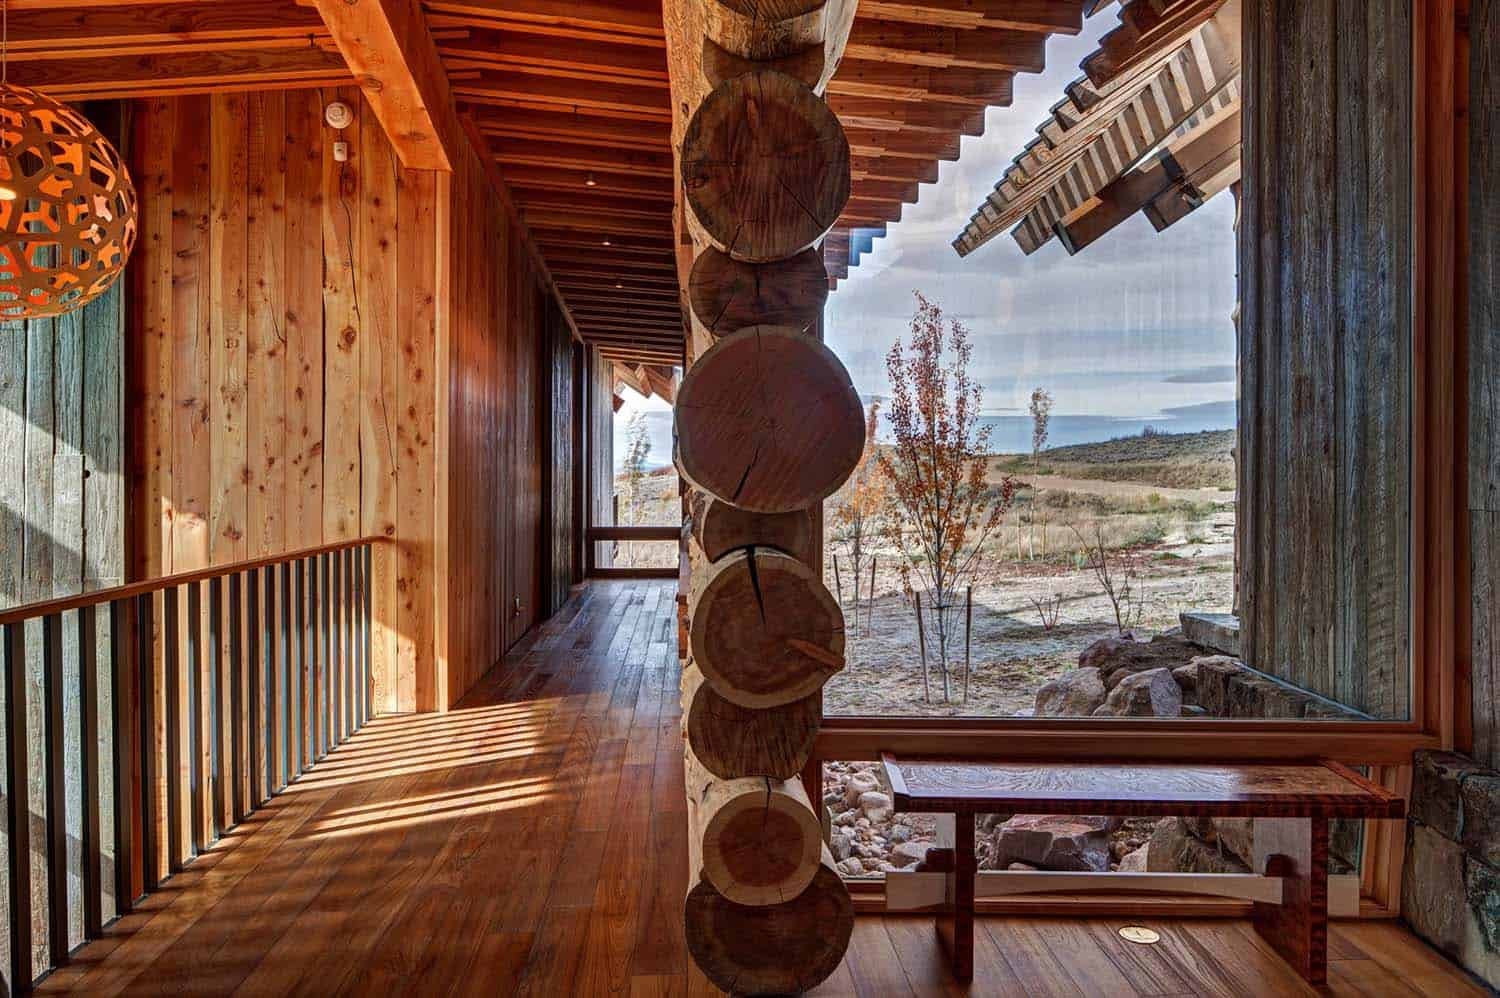 Modern Rustic Log Home-Shubin Donaldson Architects-14-1 Kindesign